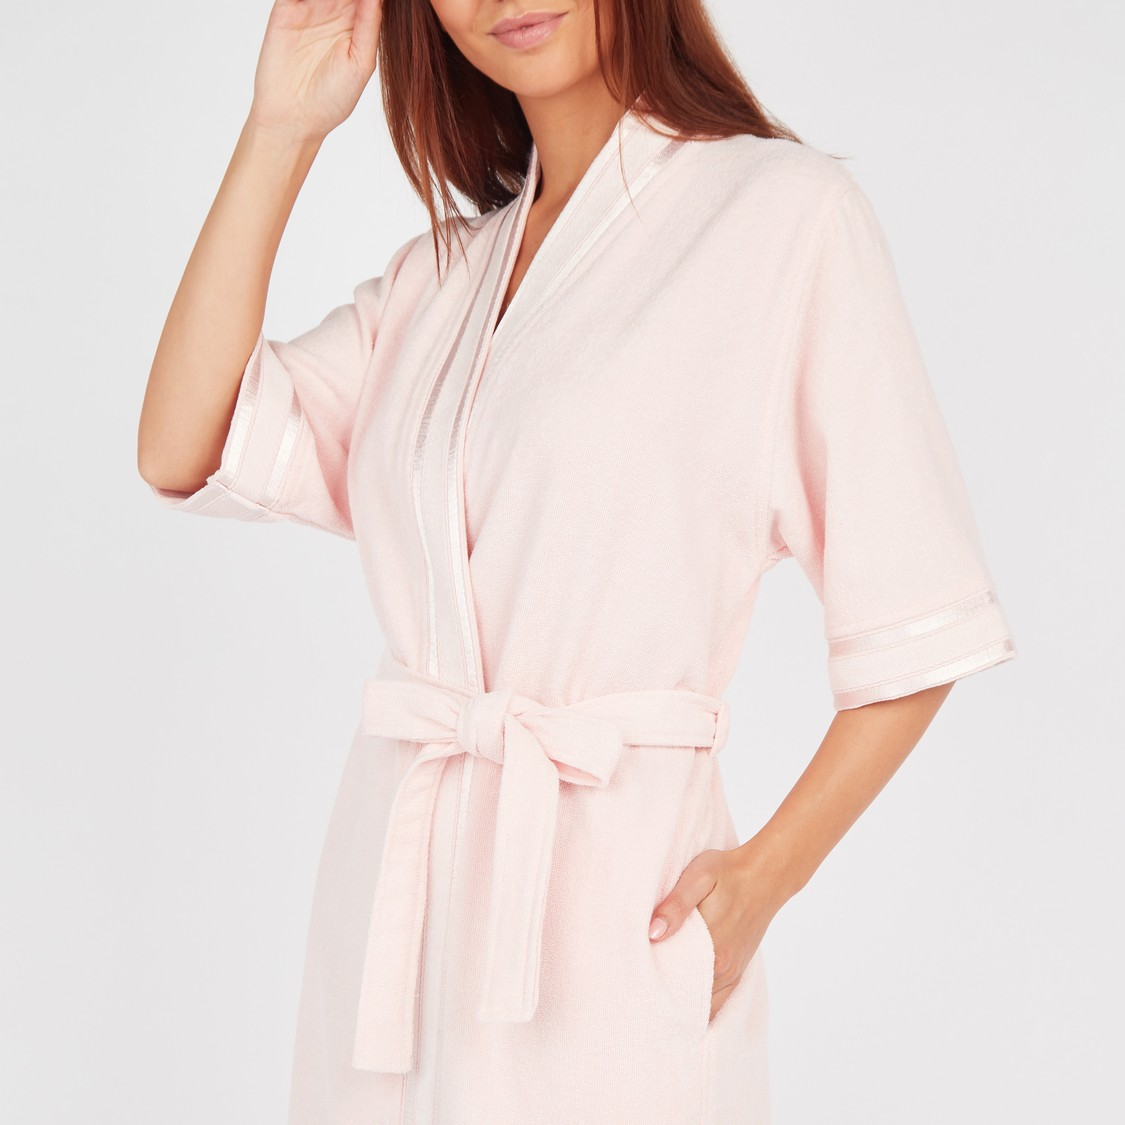 Textured Bathrobe with 3/4 Sleeves and Tie-Ups